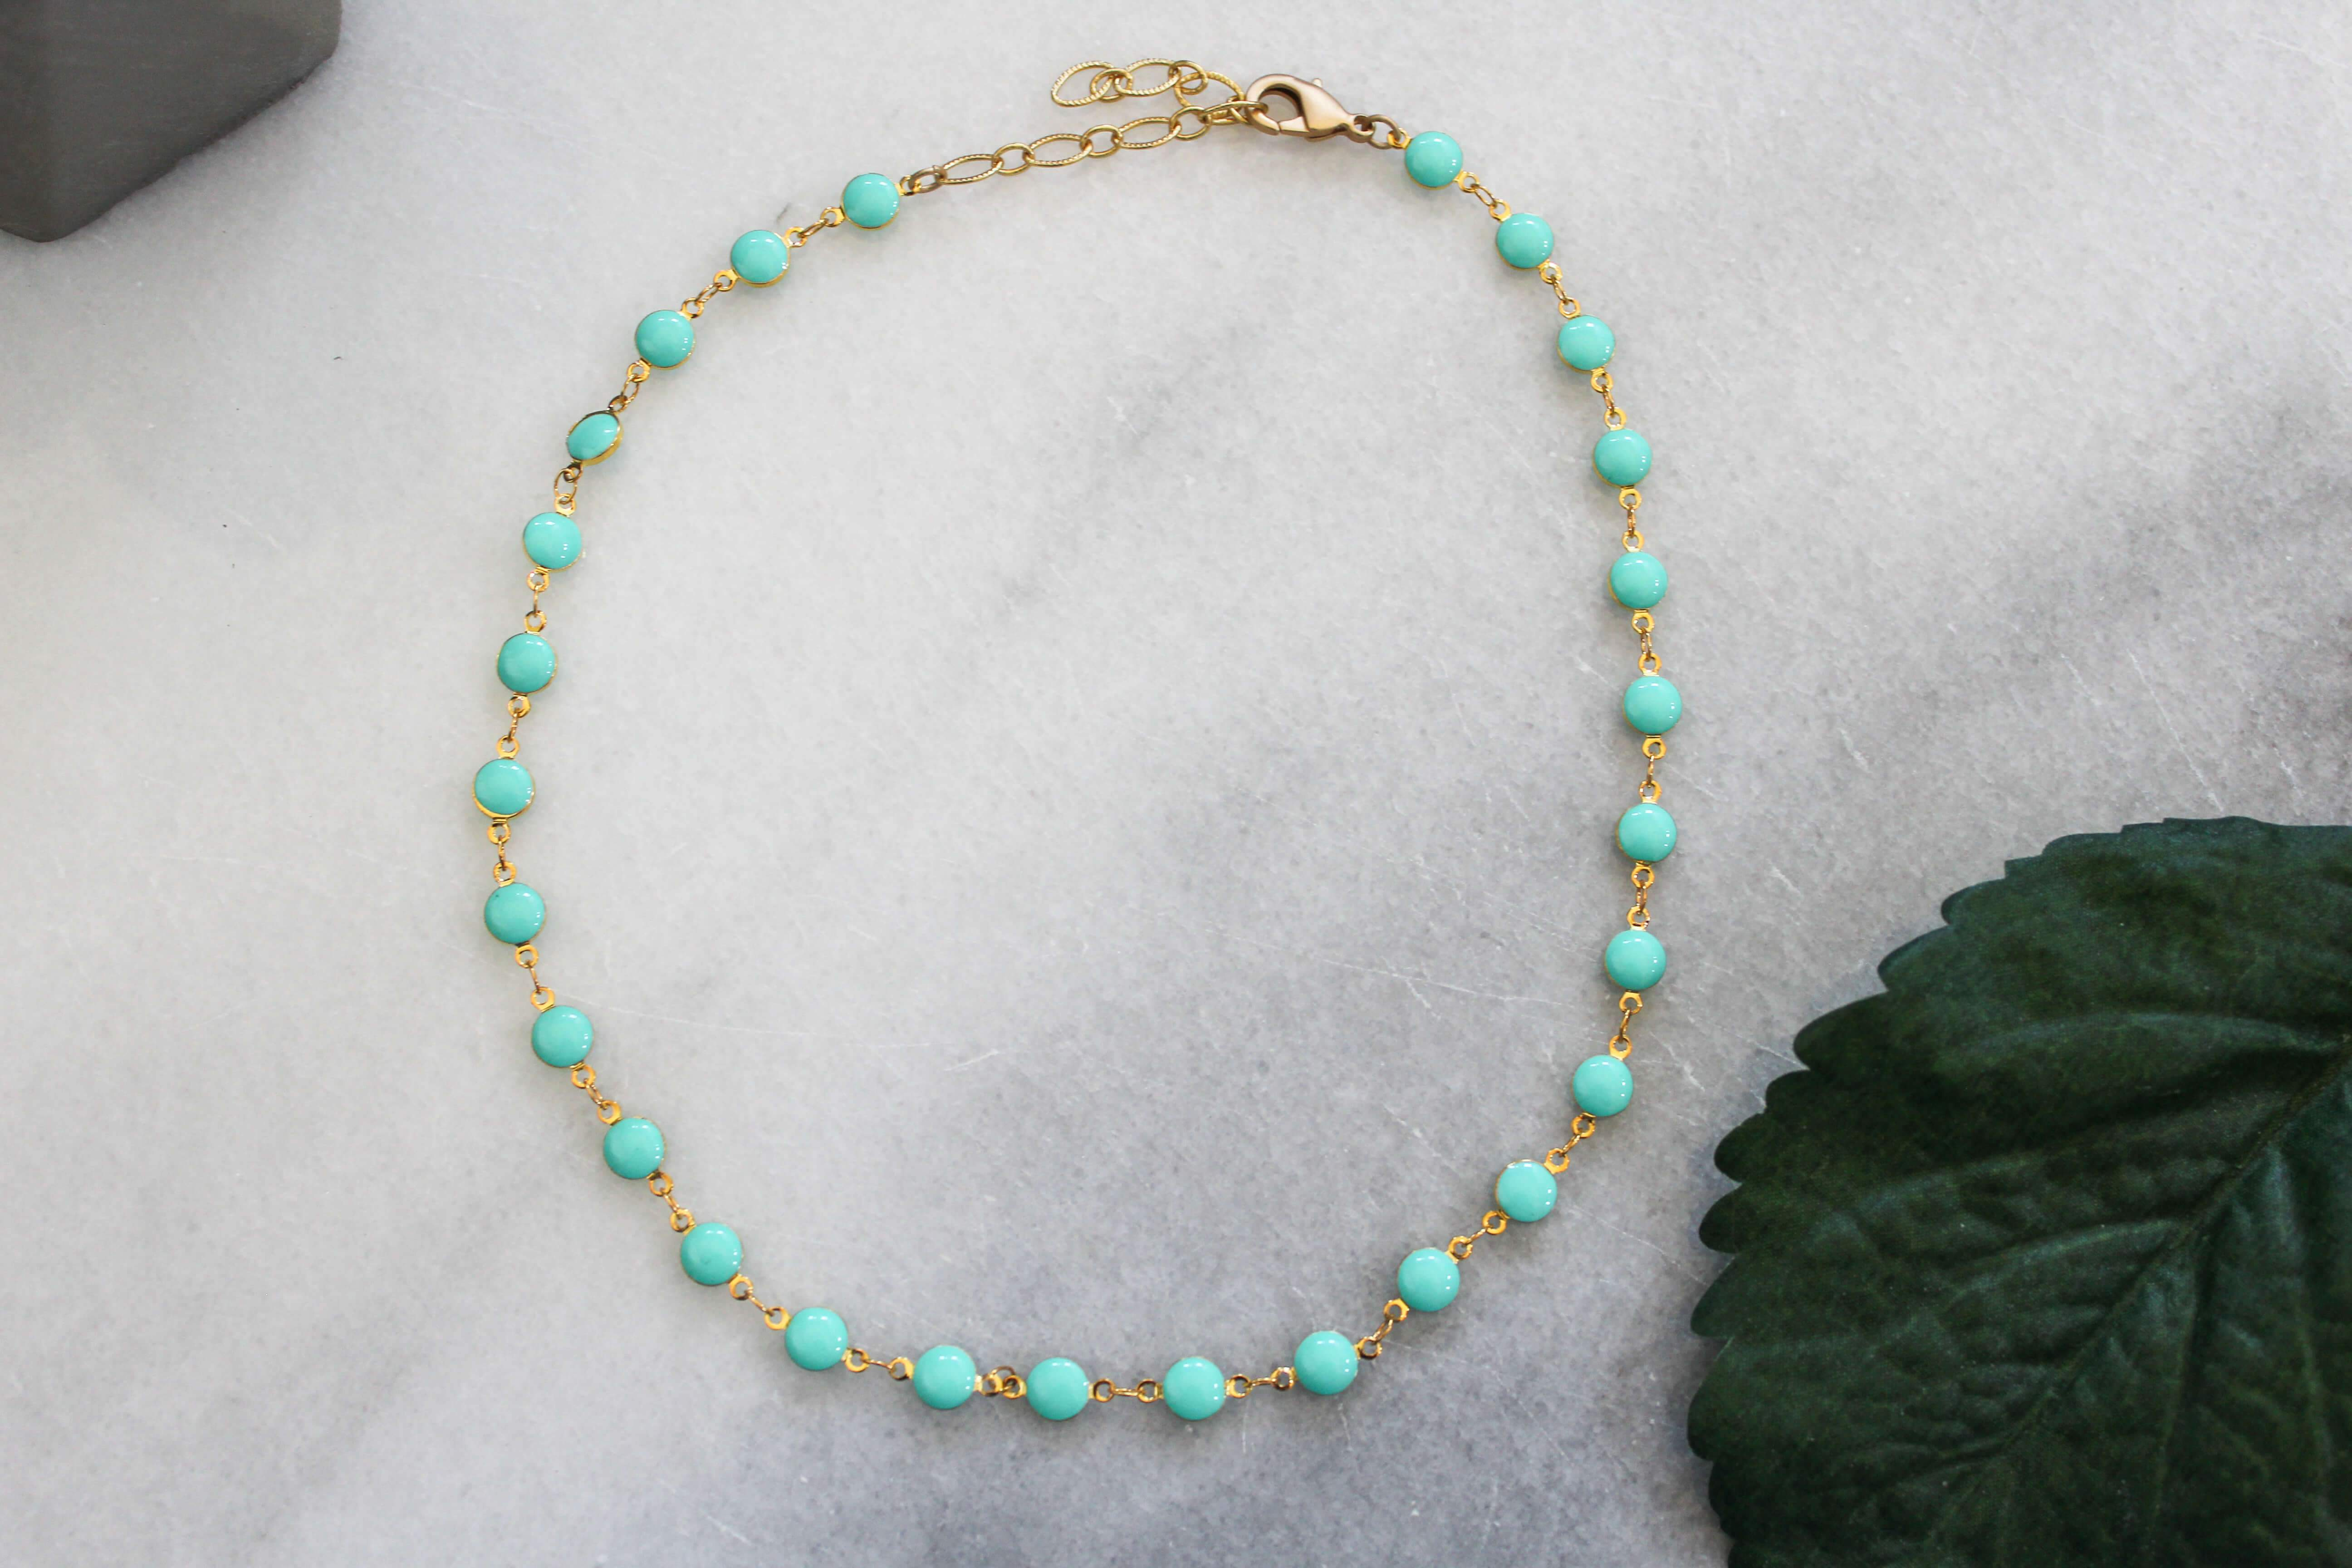 Turquoise and Gold Adjustable Necklace jewelry Ronda Smith Designs